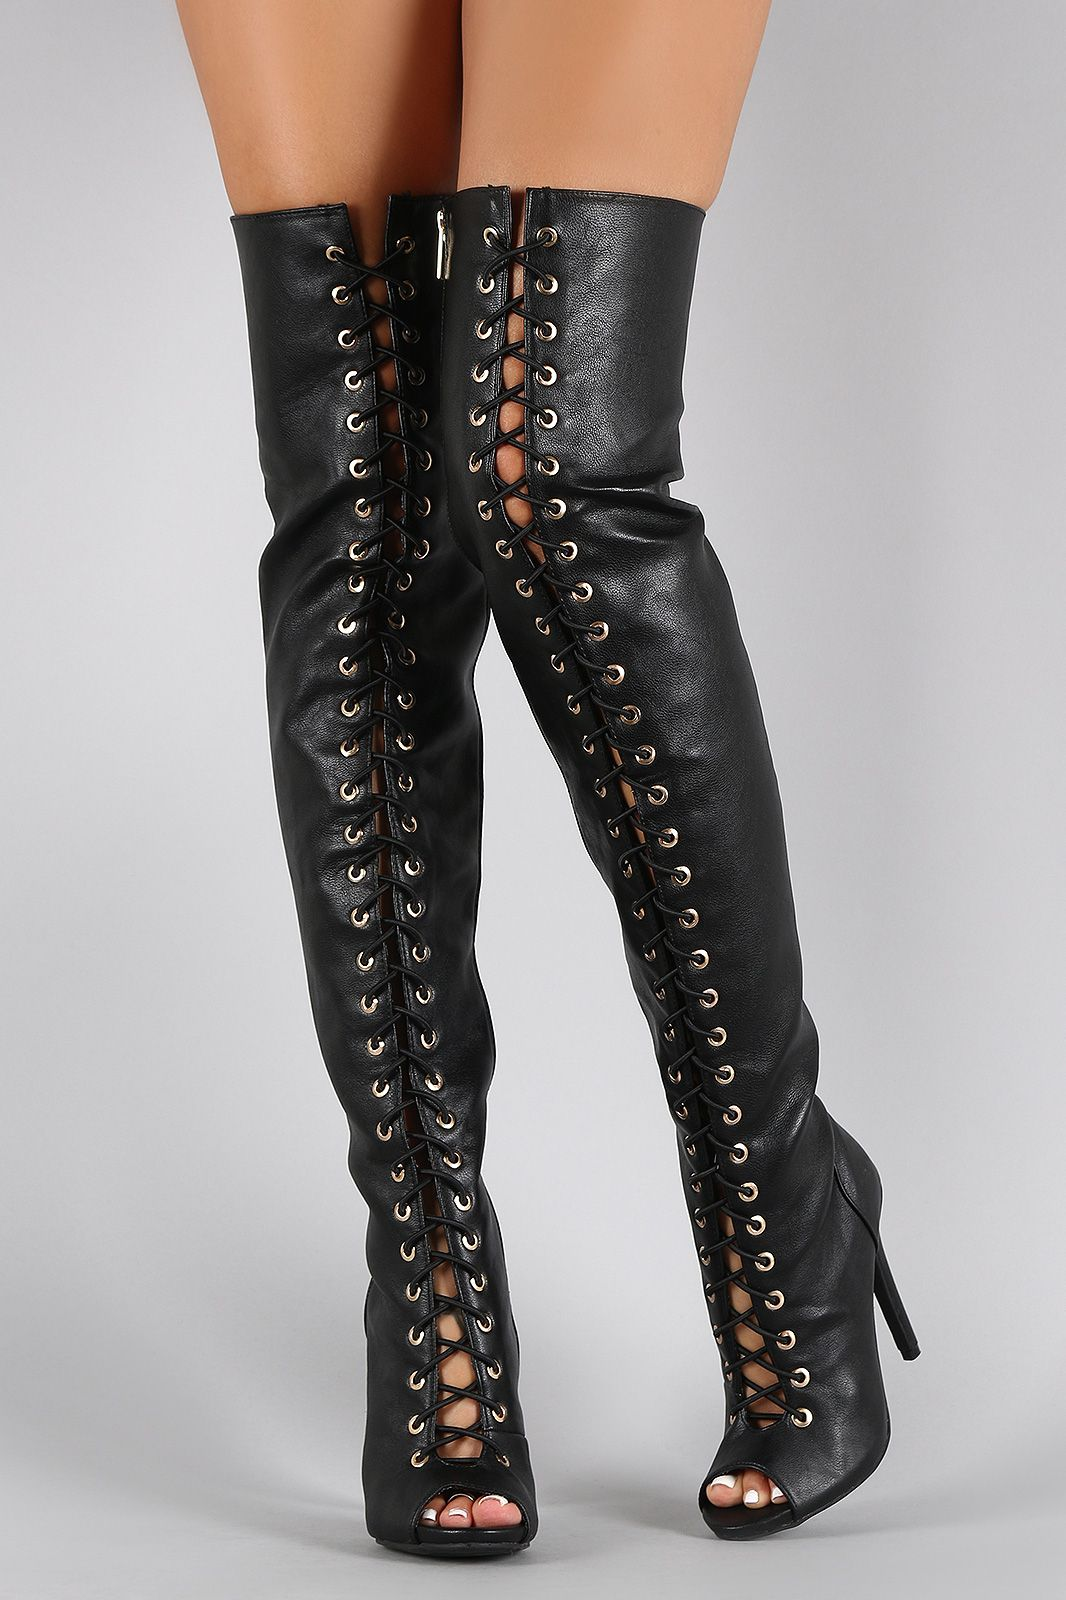 082c677a3d6 Dollhouse Vegan Leather Lace Up Peep Toe Stiletto Thigh High Boots ...